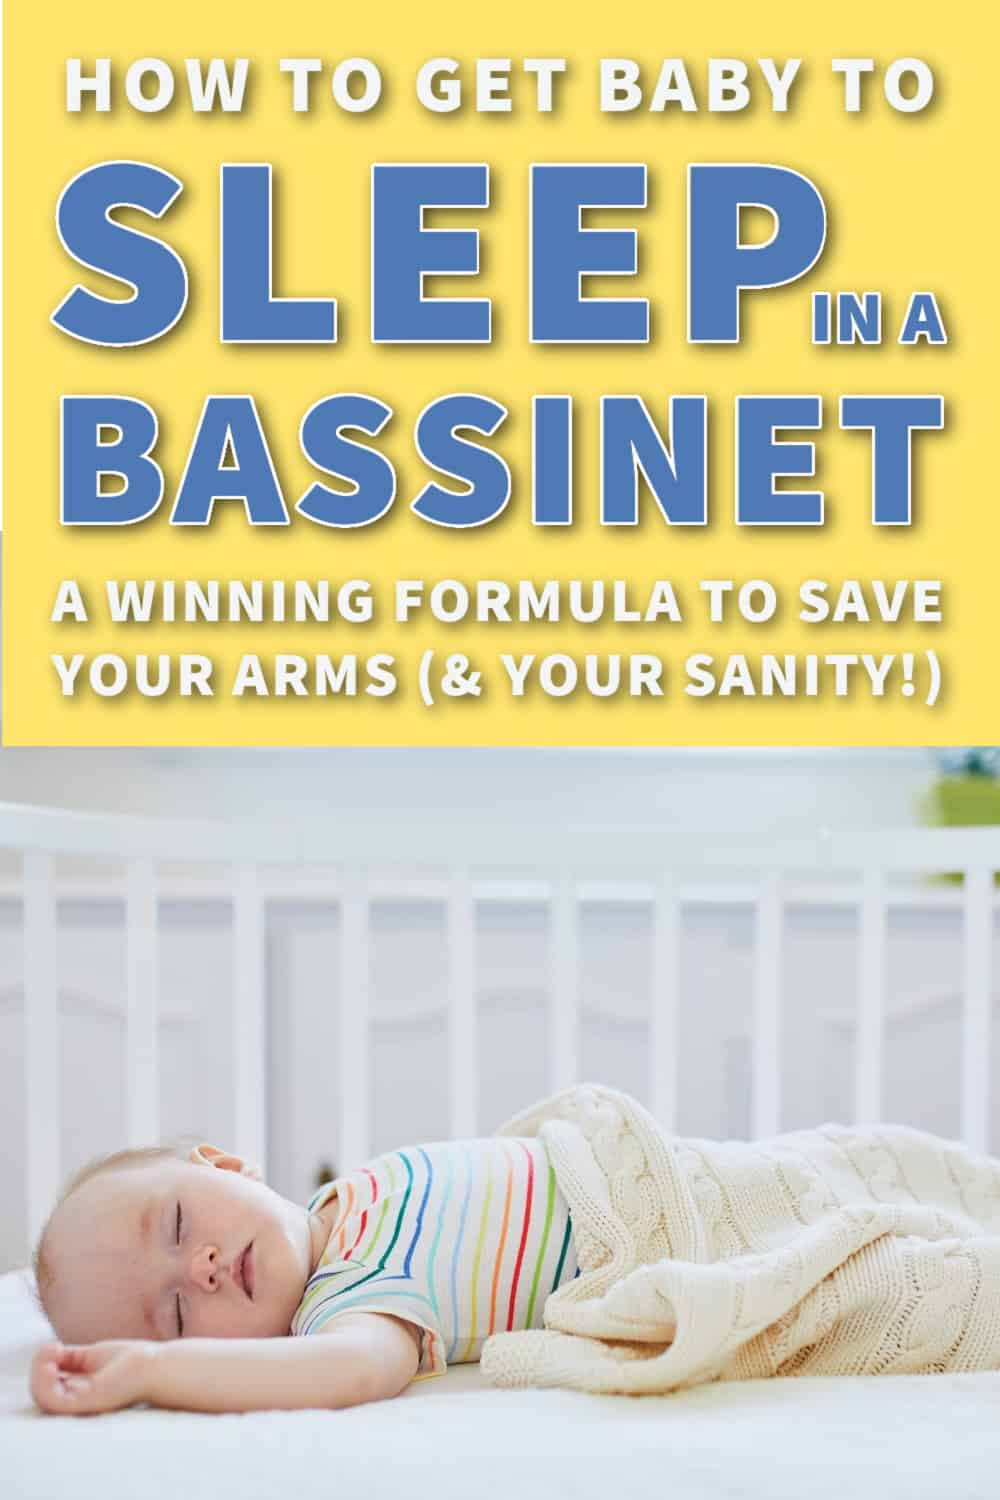 How to get your newborn to sleep in a bassinet instead of your arms with 12 different tactics – so you can finally take a break!